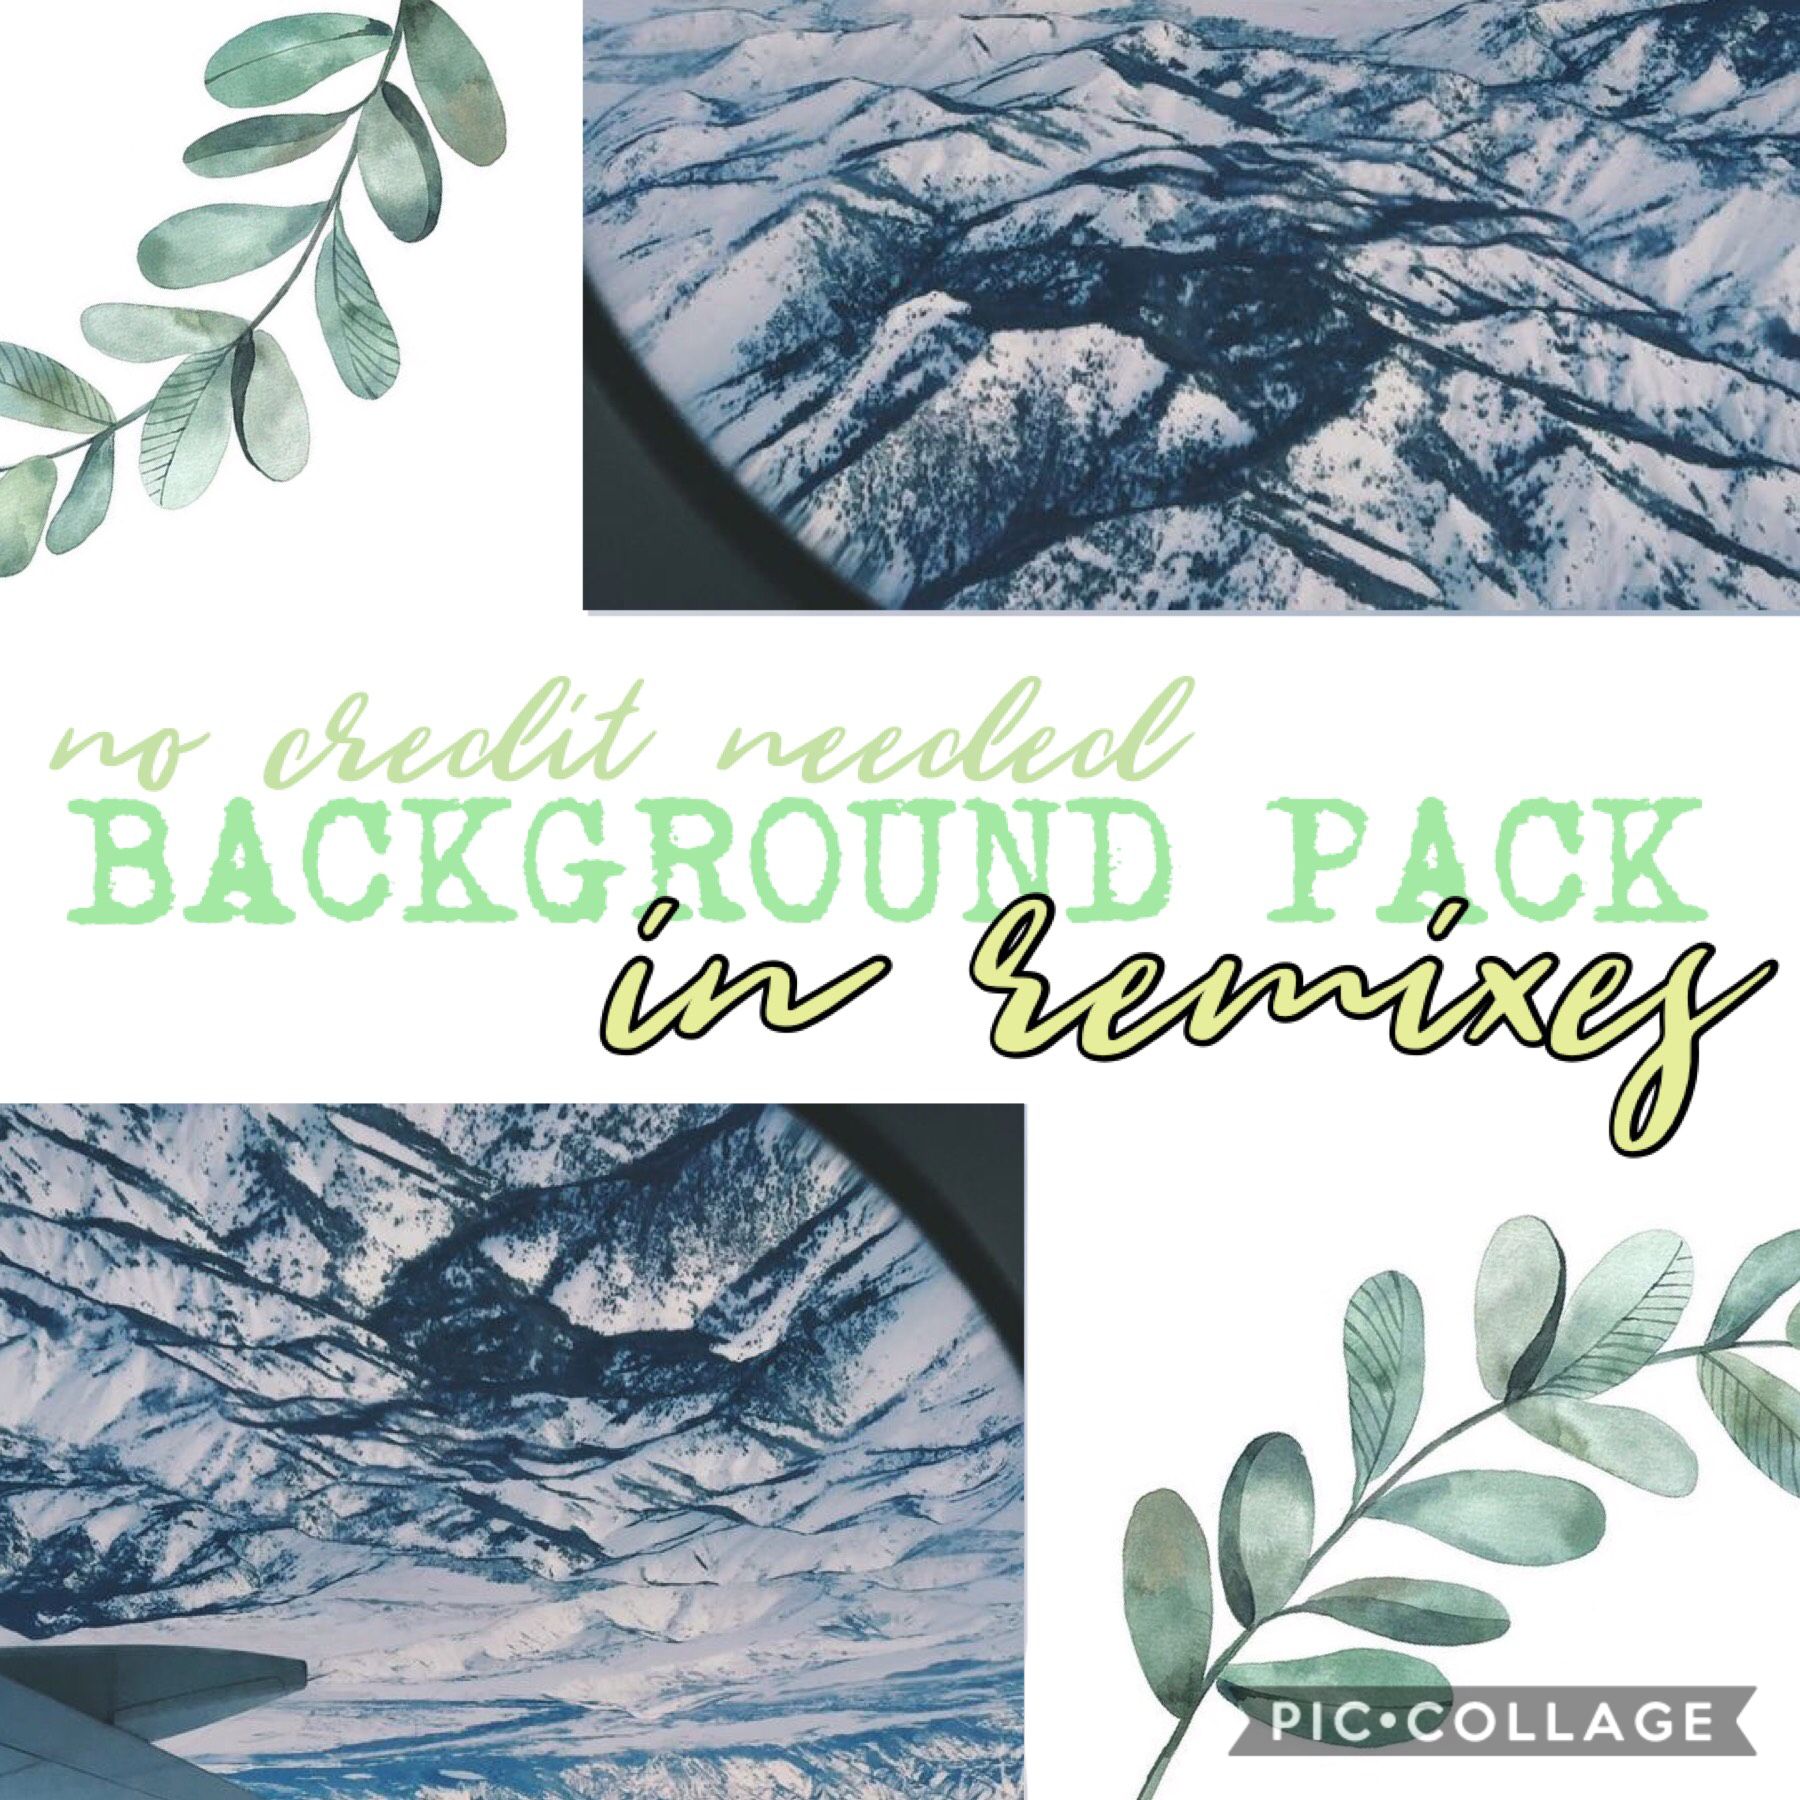 background pack in remixes!! no credit needed